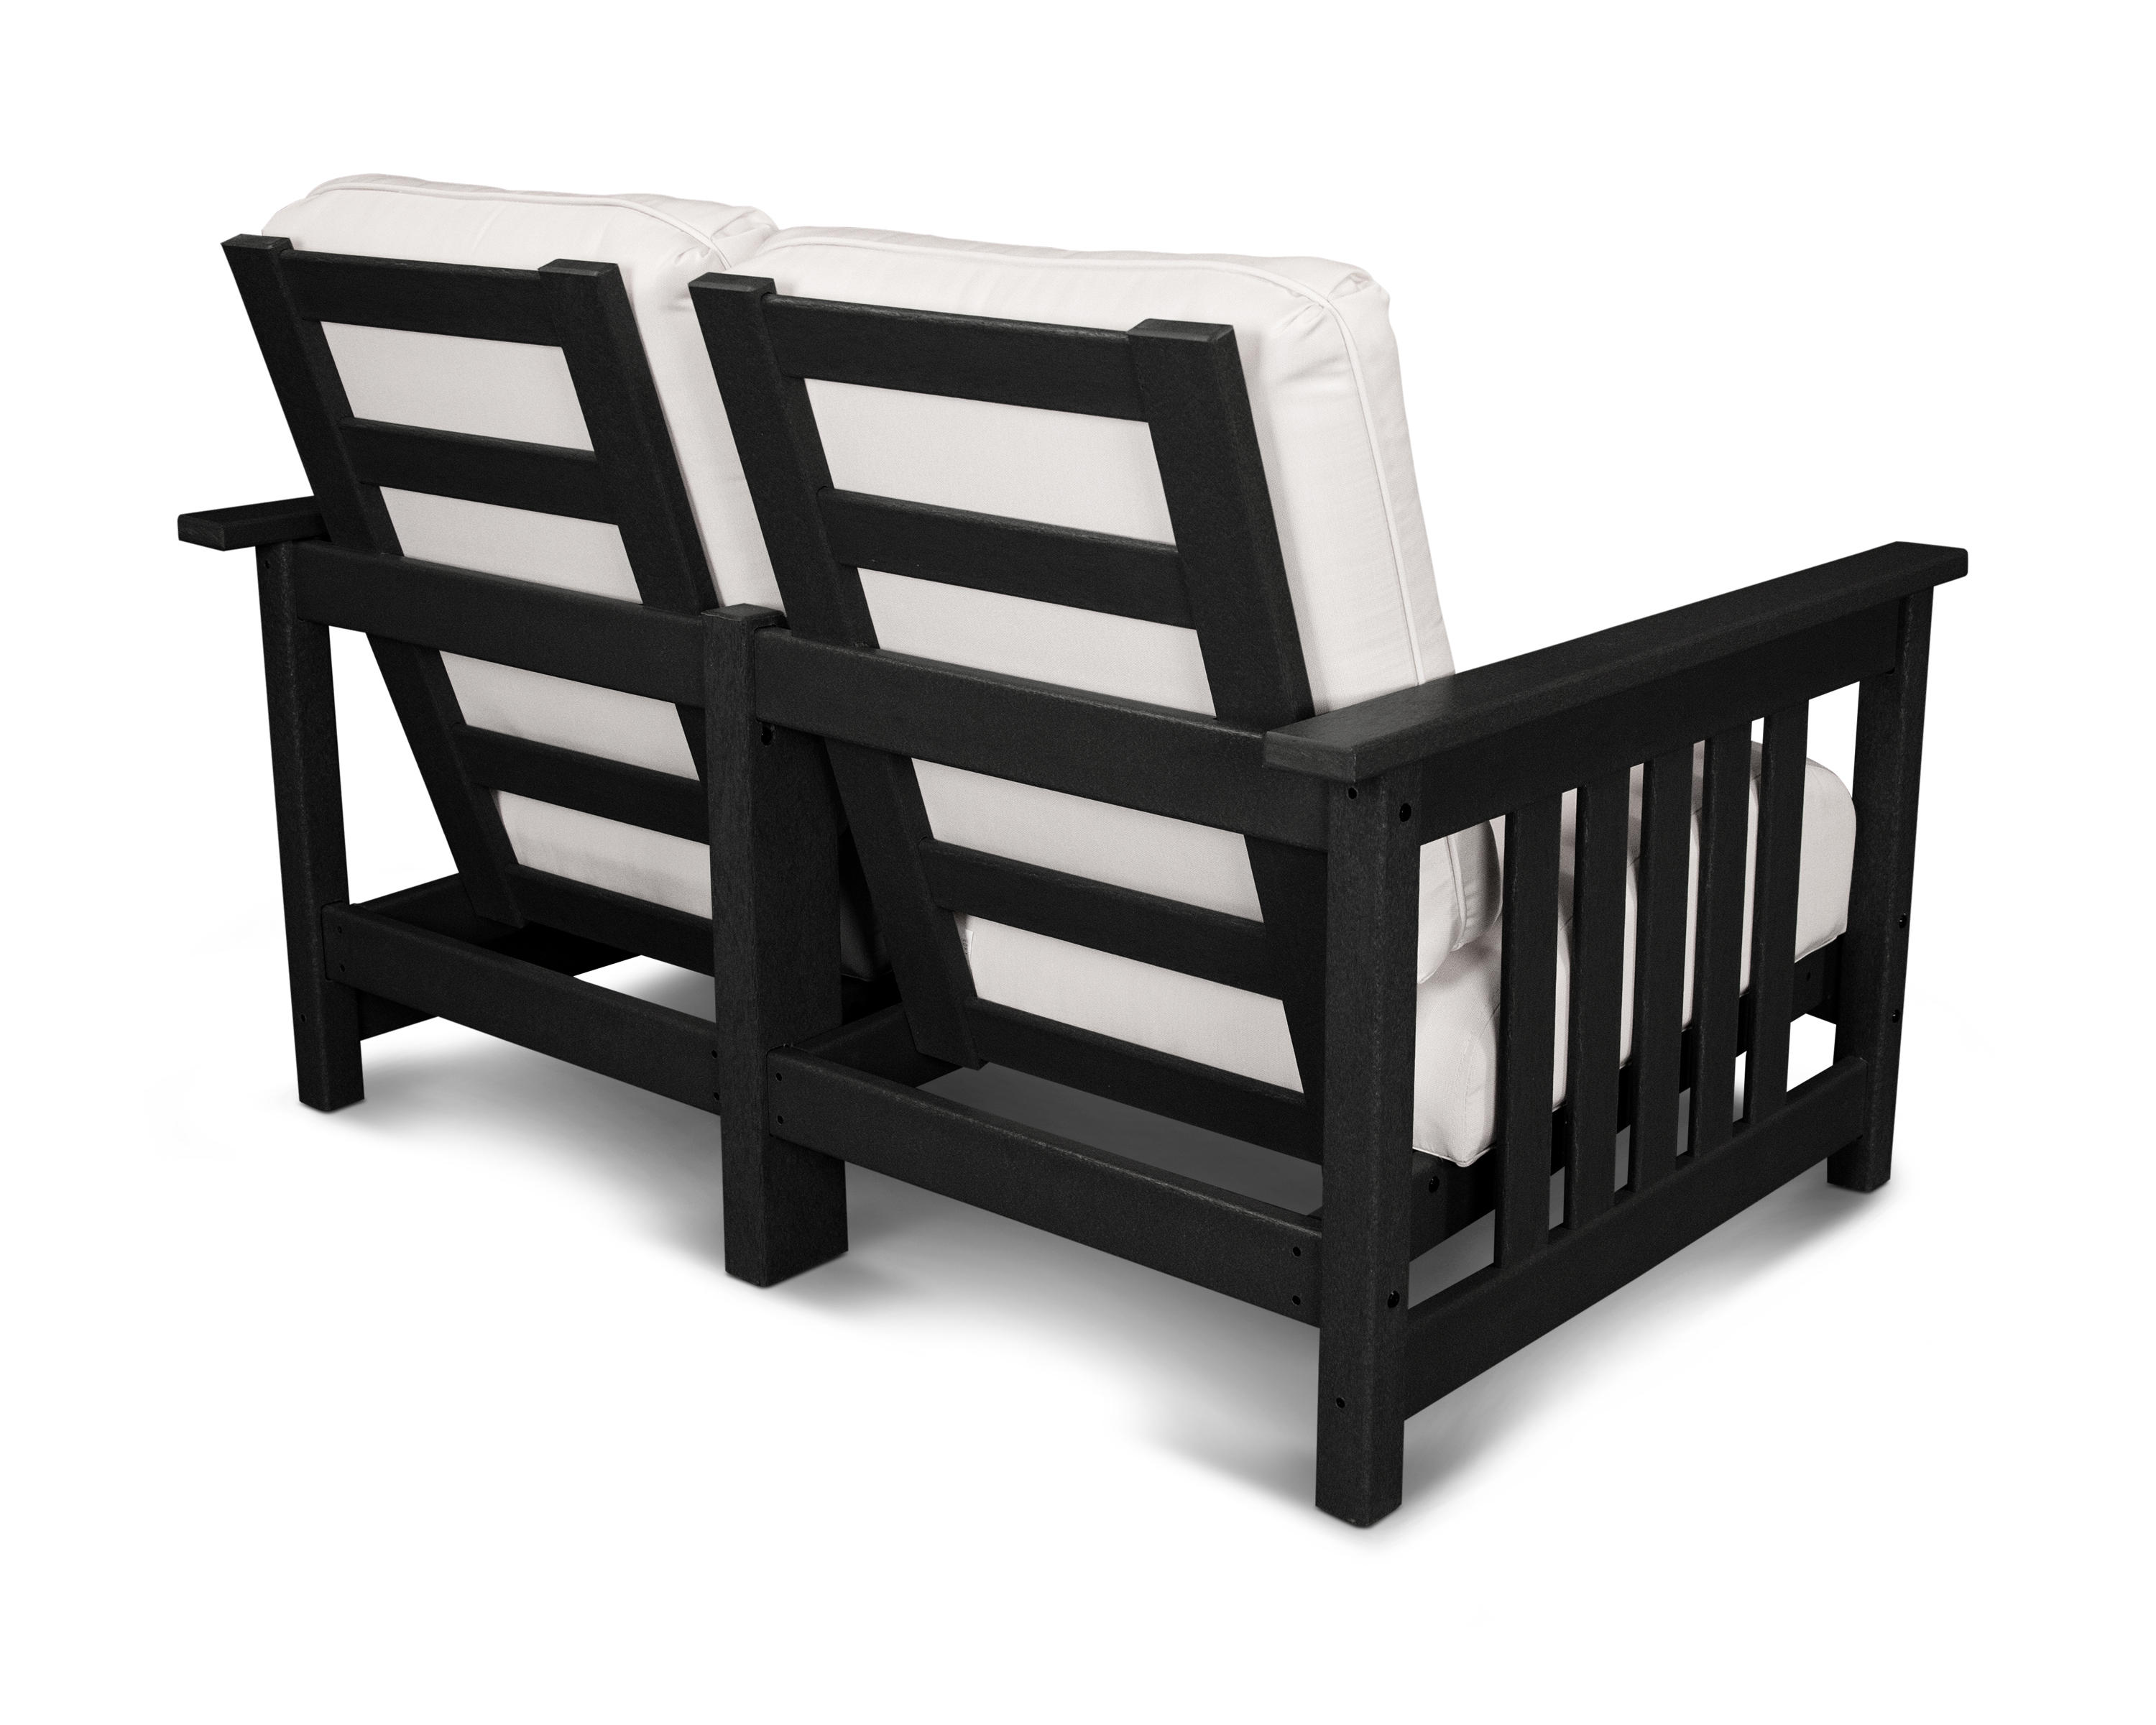 This Cozy Seat For Two Will Add Style And Charm To Your Outdoor Sitting Area. Constructed Of Fade-resistant, Black Solid Polywood